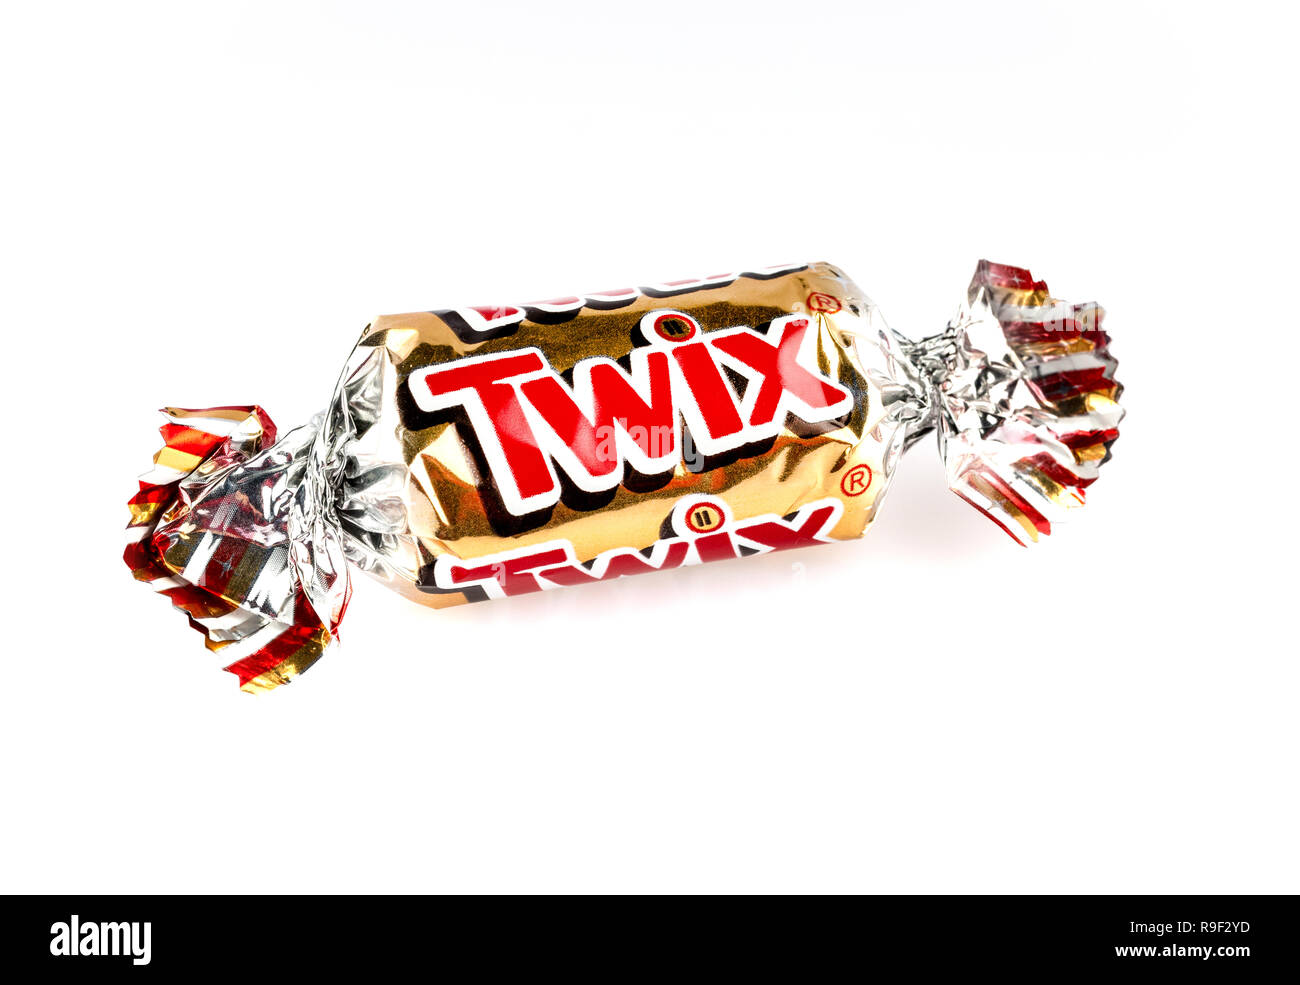 Twix Sweets Stock Photos Twix Sweets Stock Images Alamy